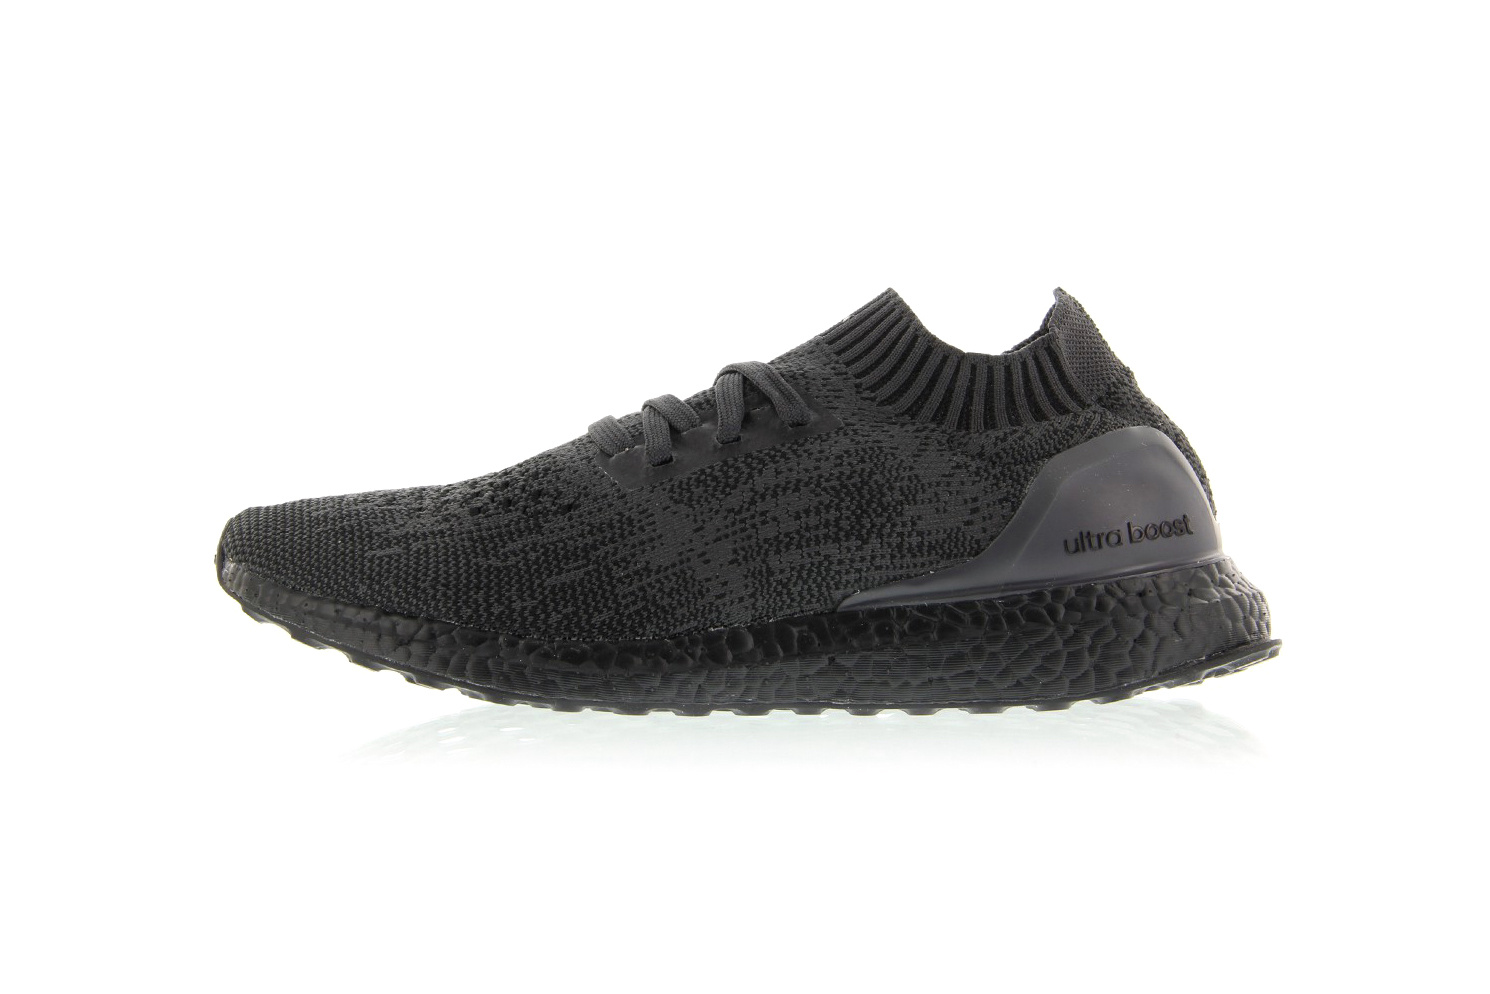 La adidas UltraBOOST Uncaged Triple Black sera disponible demain et même en Europe !